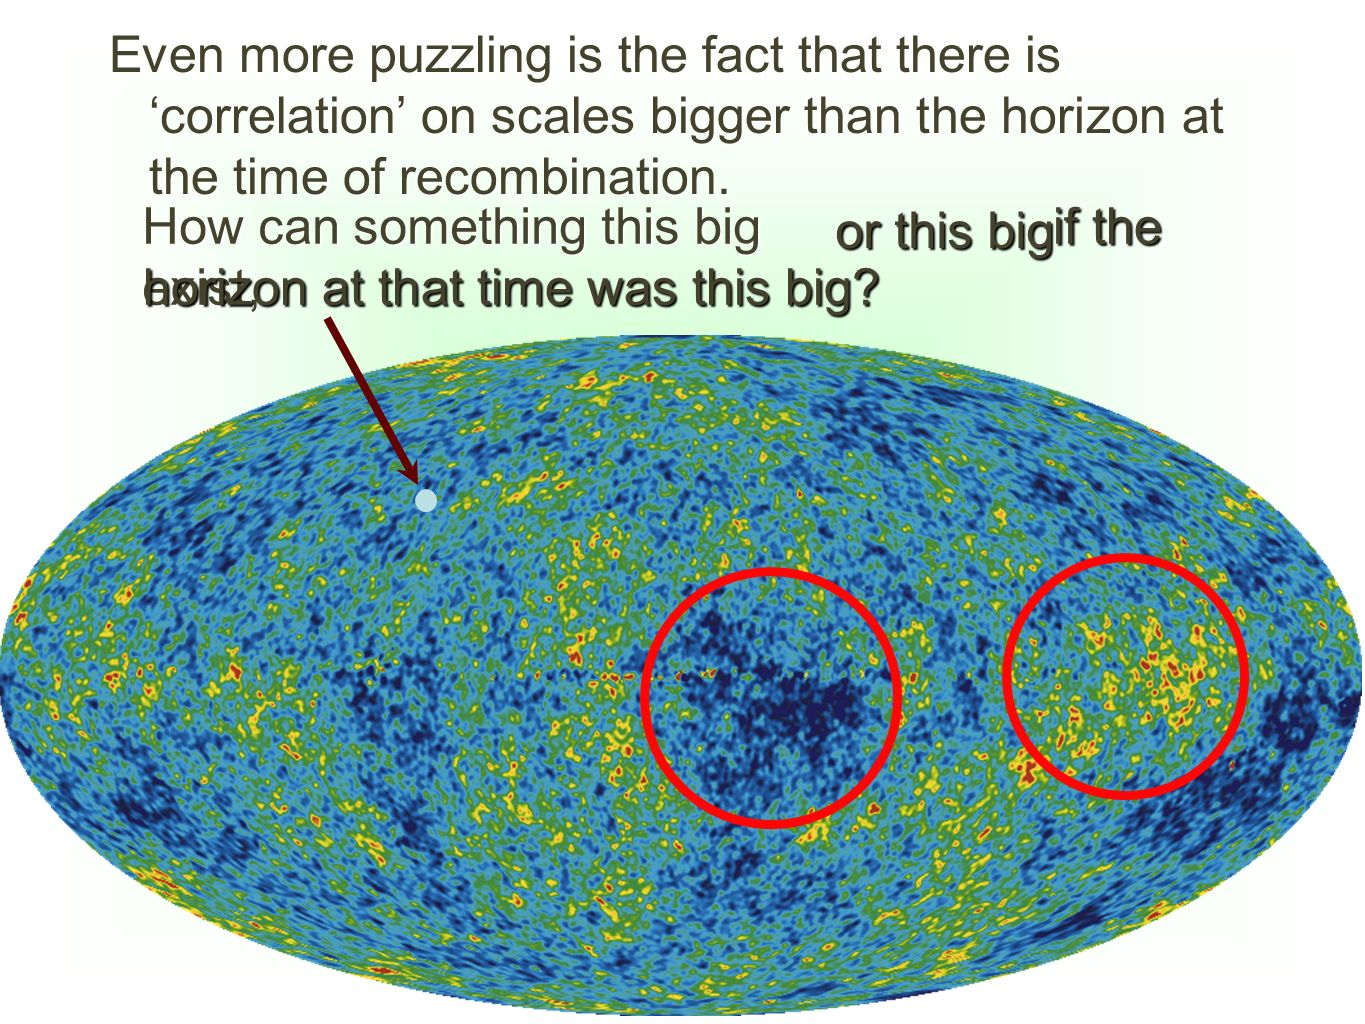 Even more puzzling is the fact that there is 'correlation' on scales bigger than the horizon at the time of recombination.